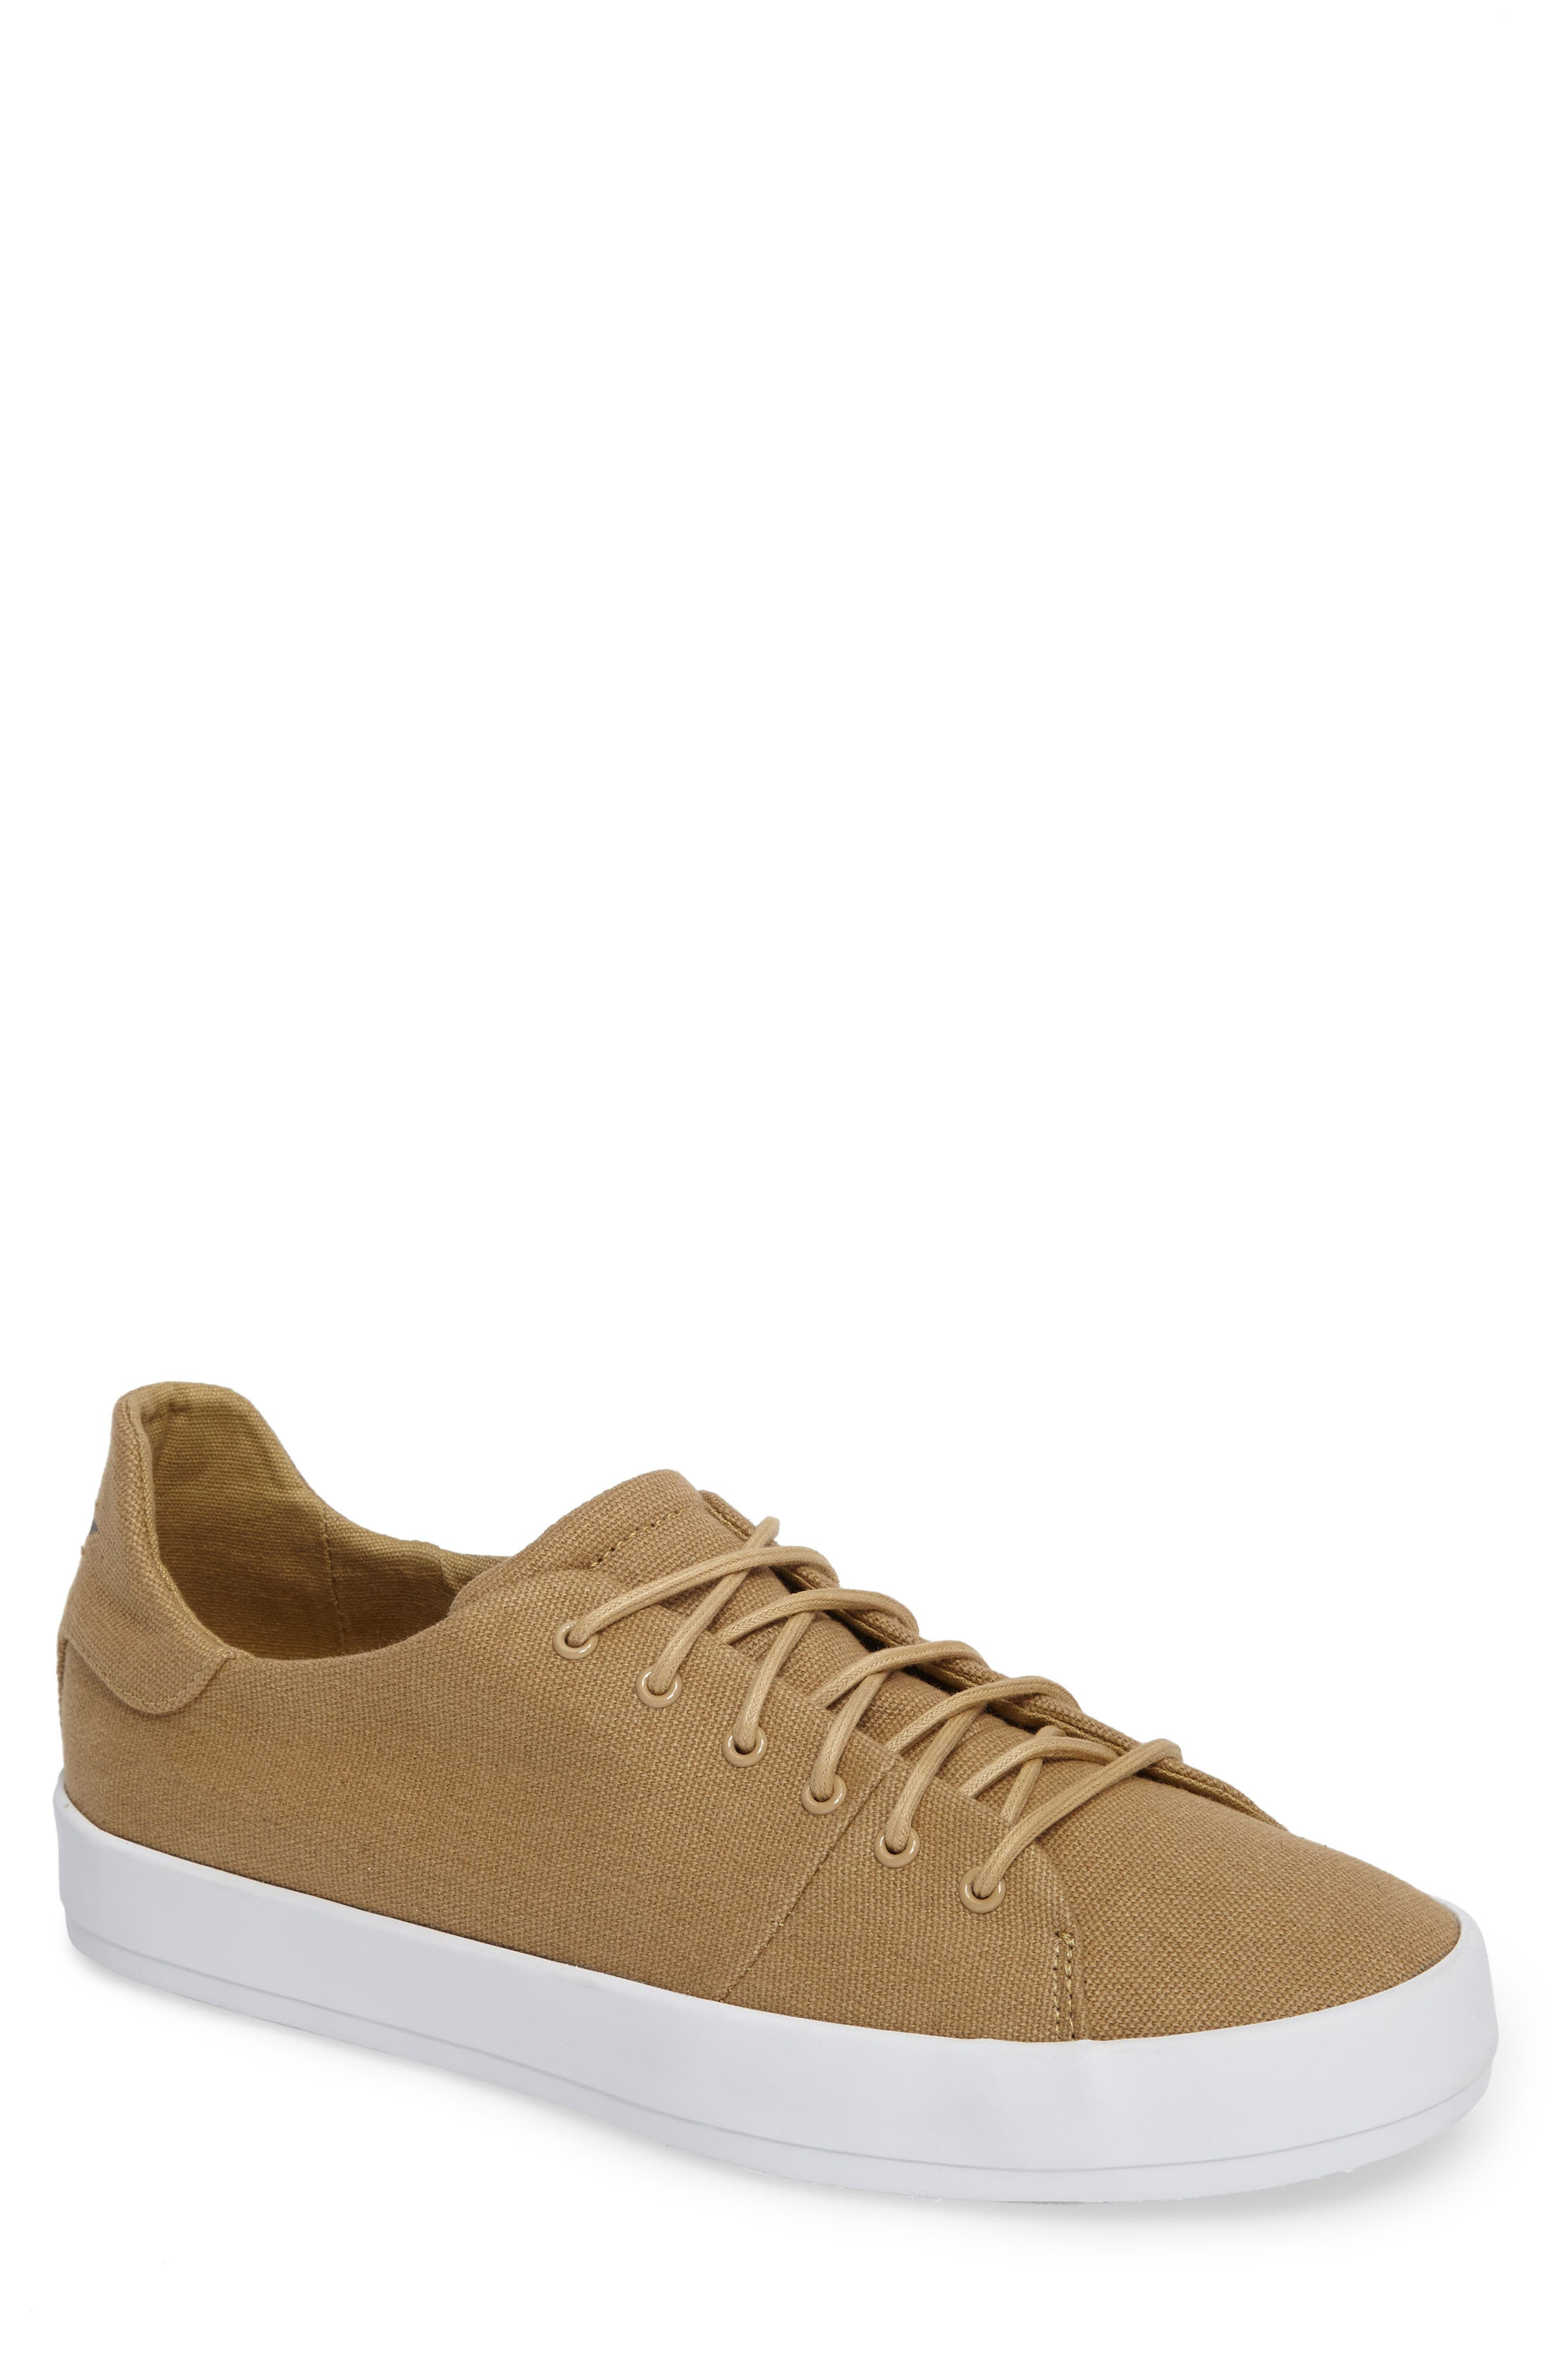 Creative Recreation Carda Low Top Sneaker (Men)